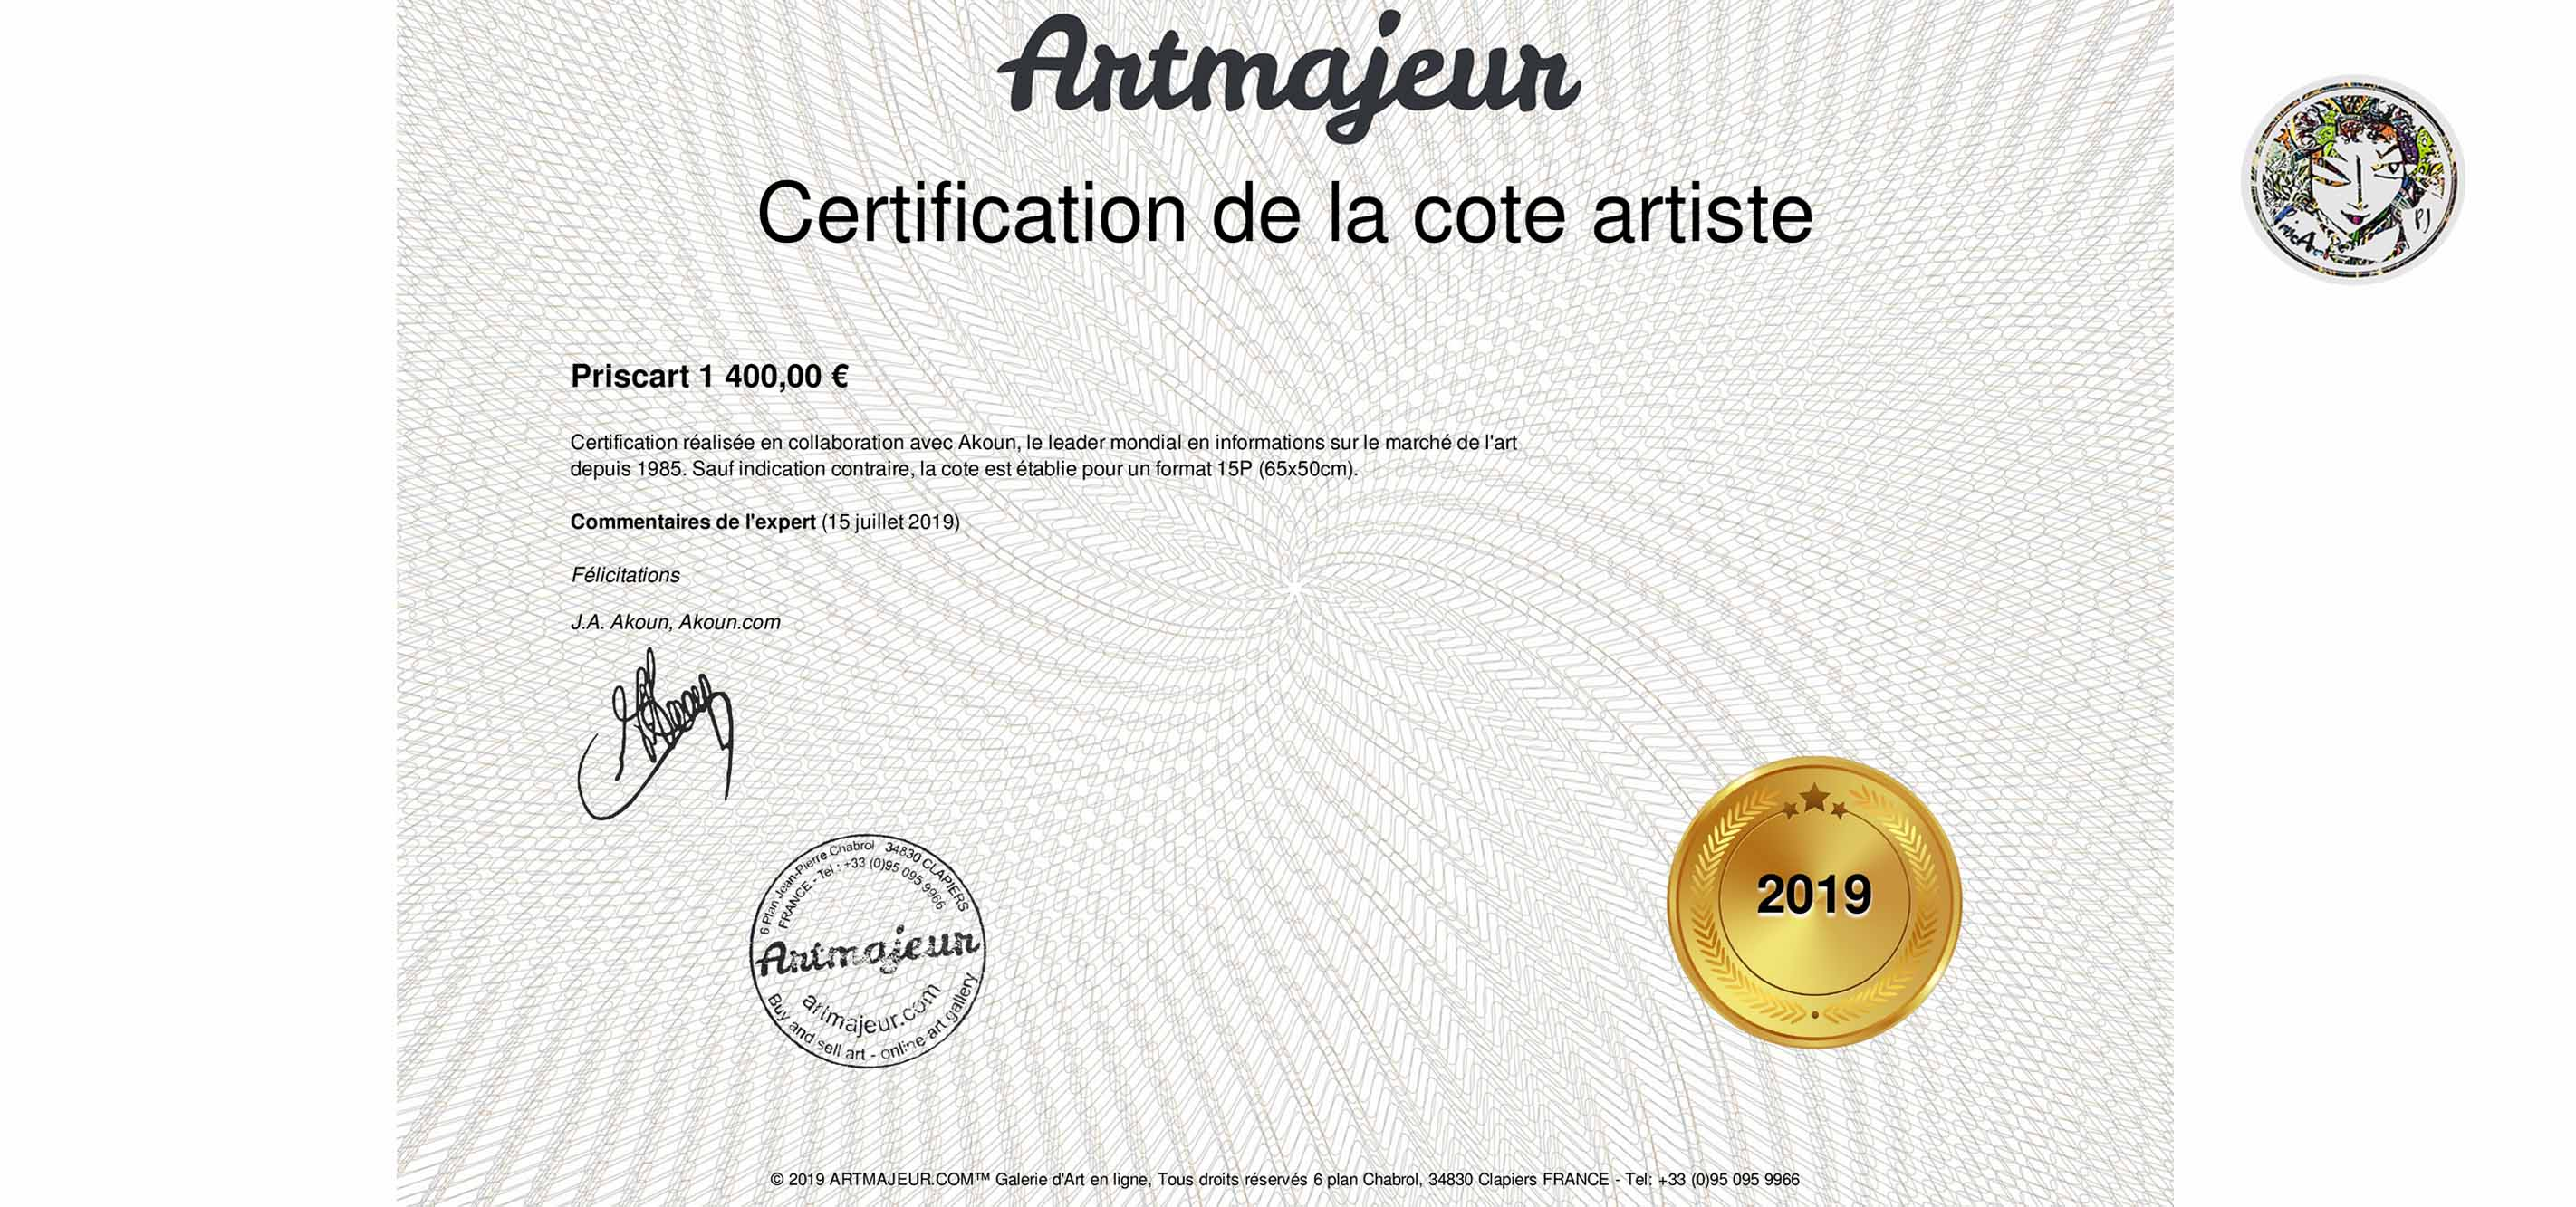 CERTIFICATION PRISCART 2019